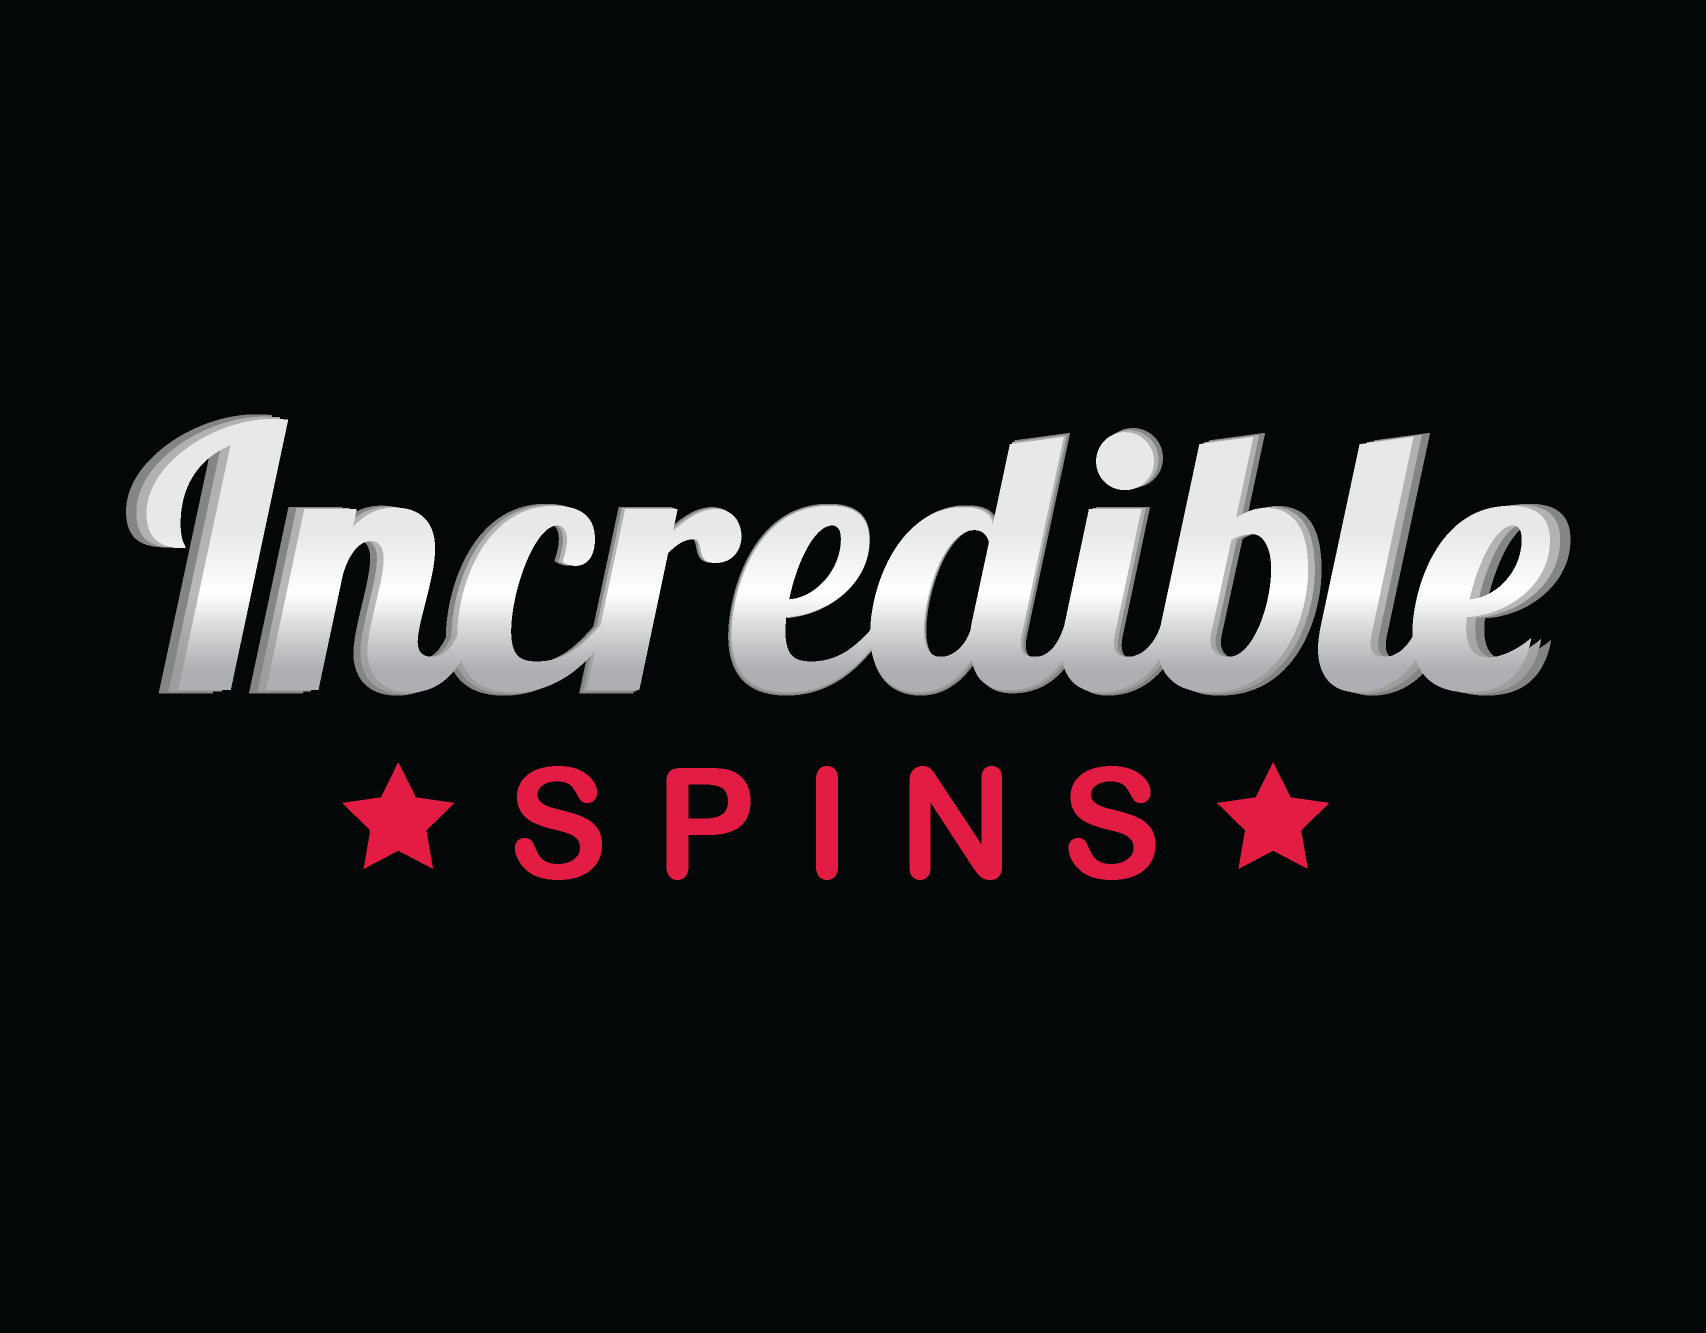 incredible spins